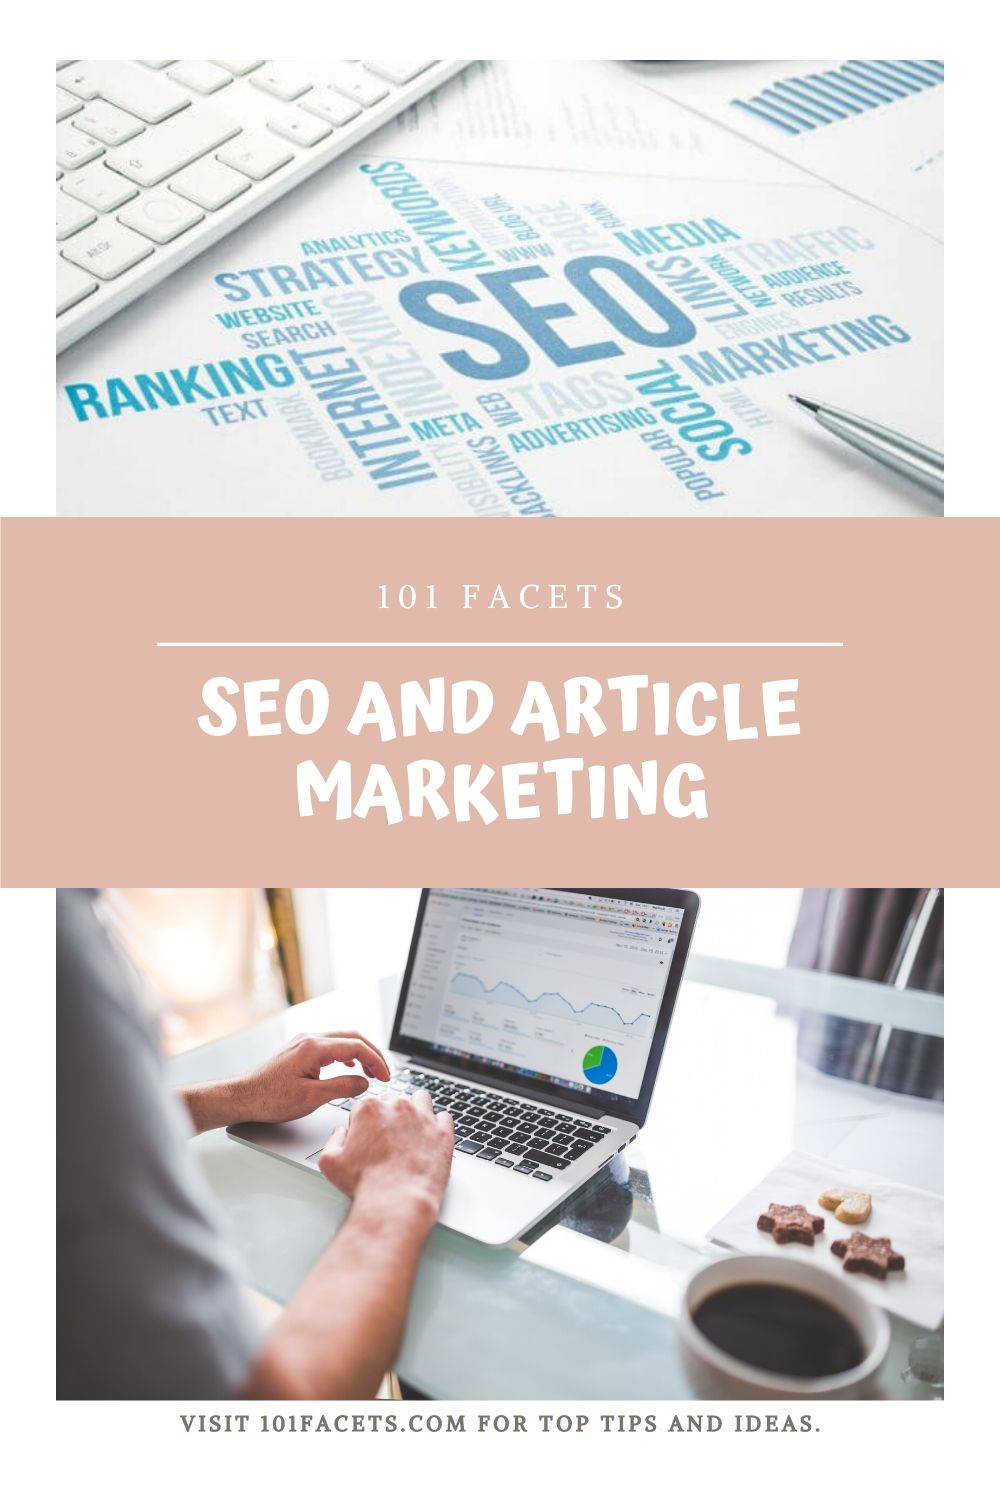 SEO and Article Marketing